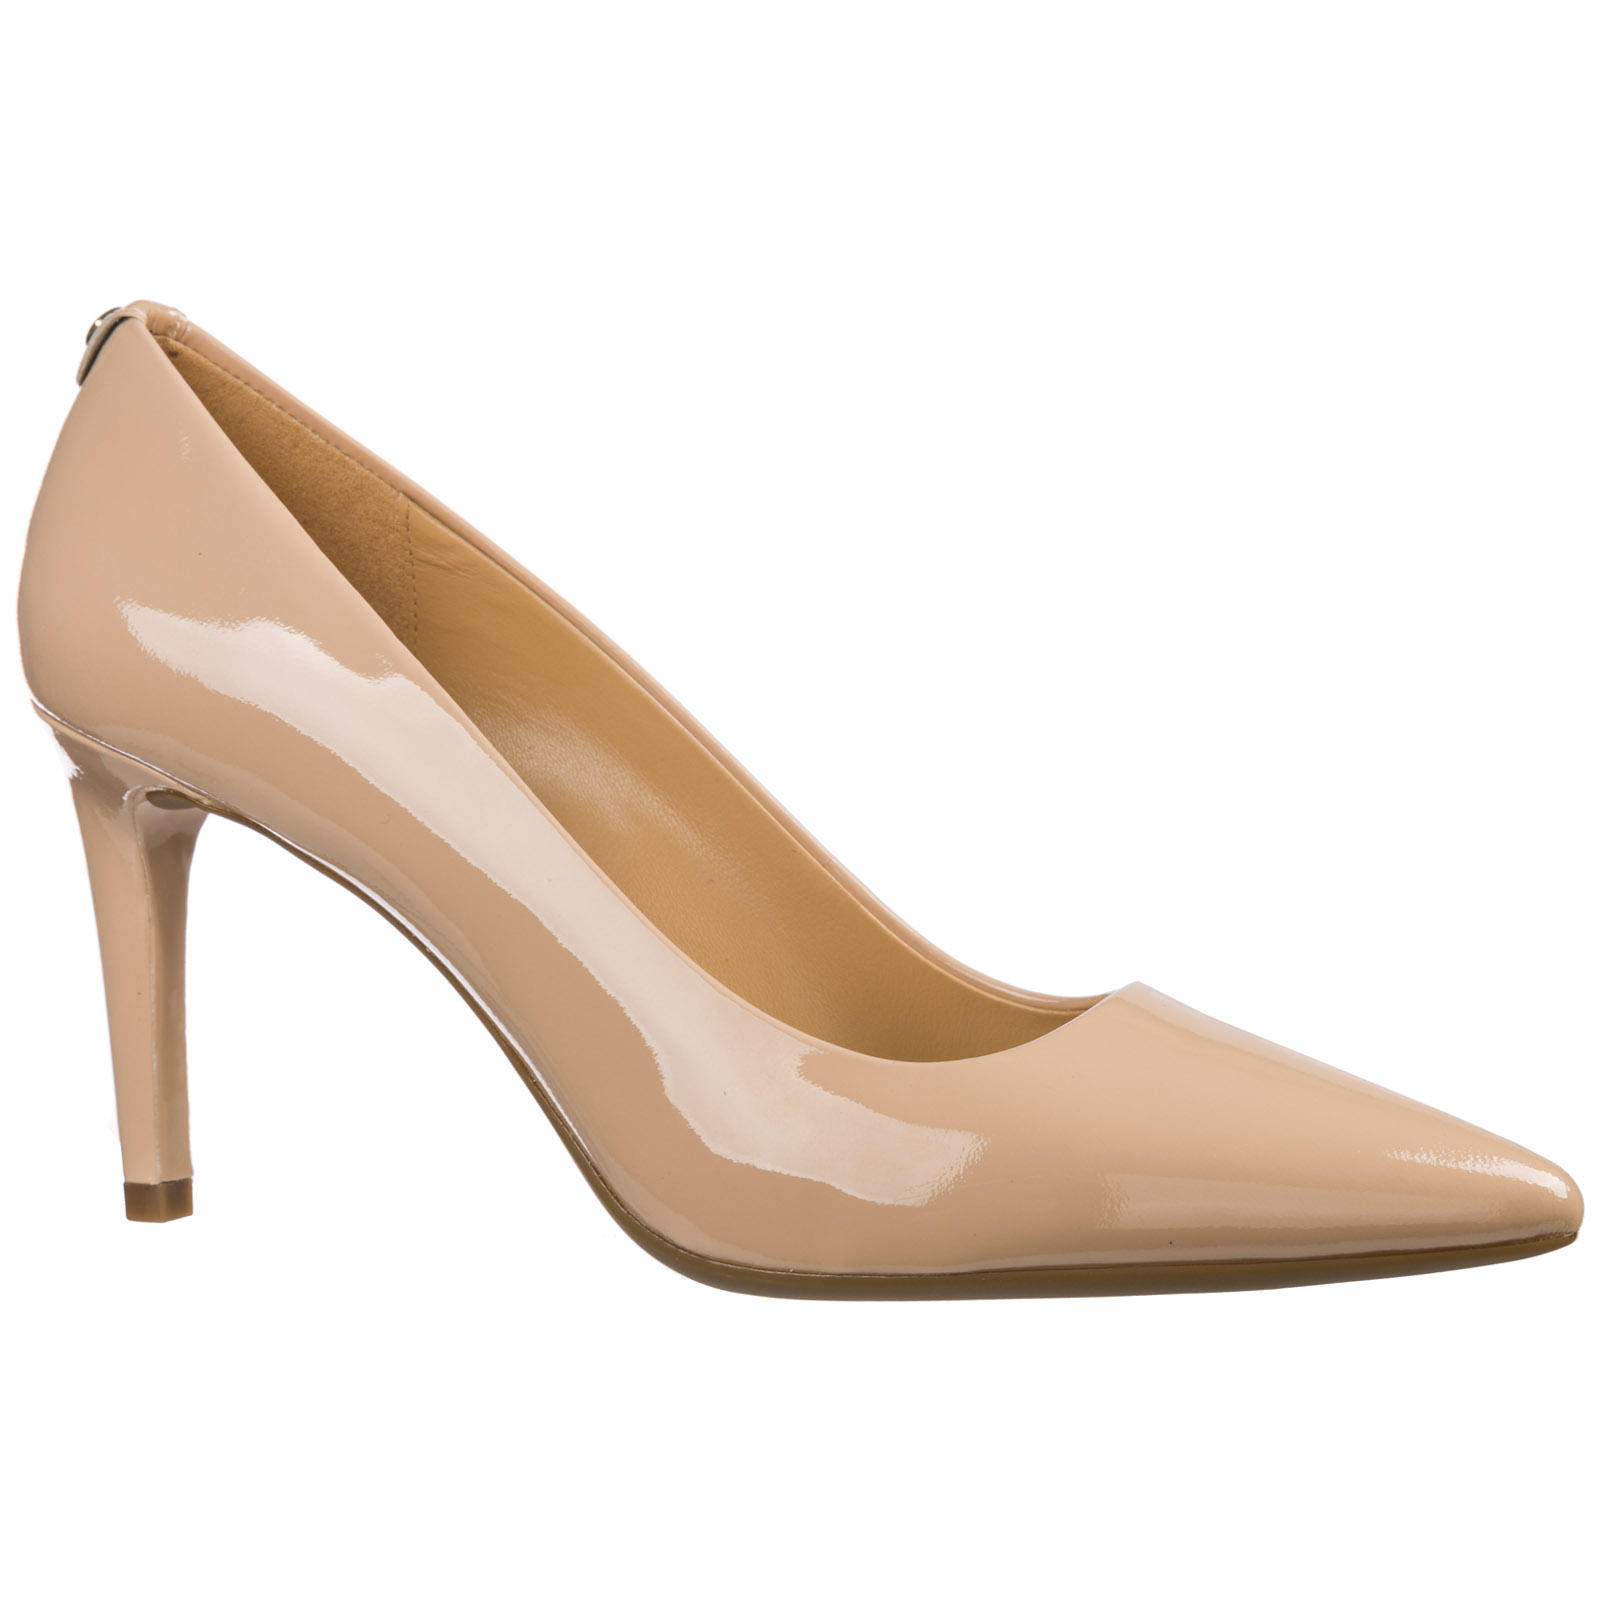 727fc183d0 Michael Kors Women's leather pumps court shoes high heel dgoldthy